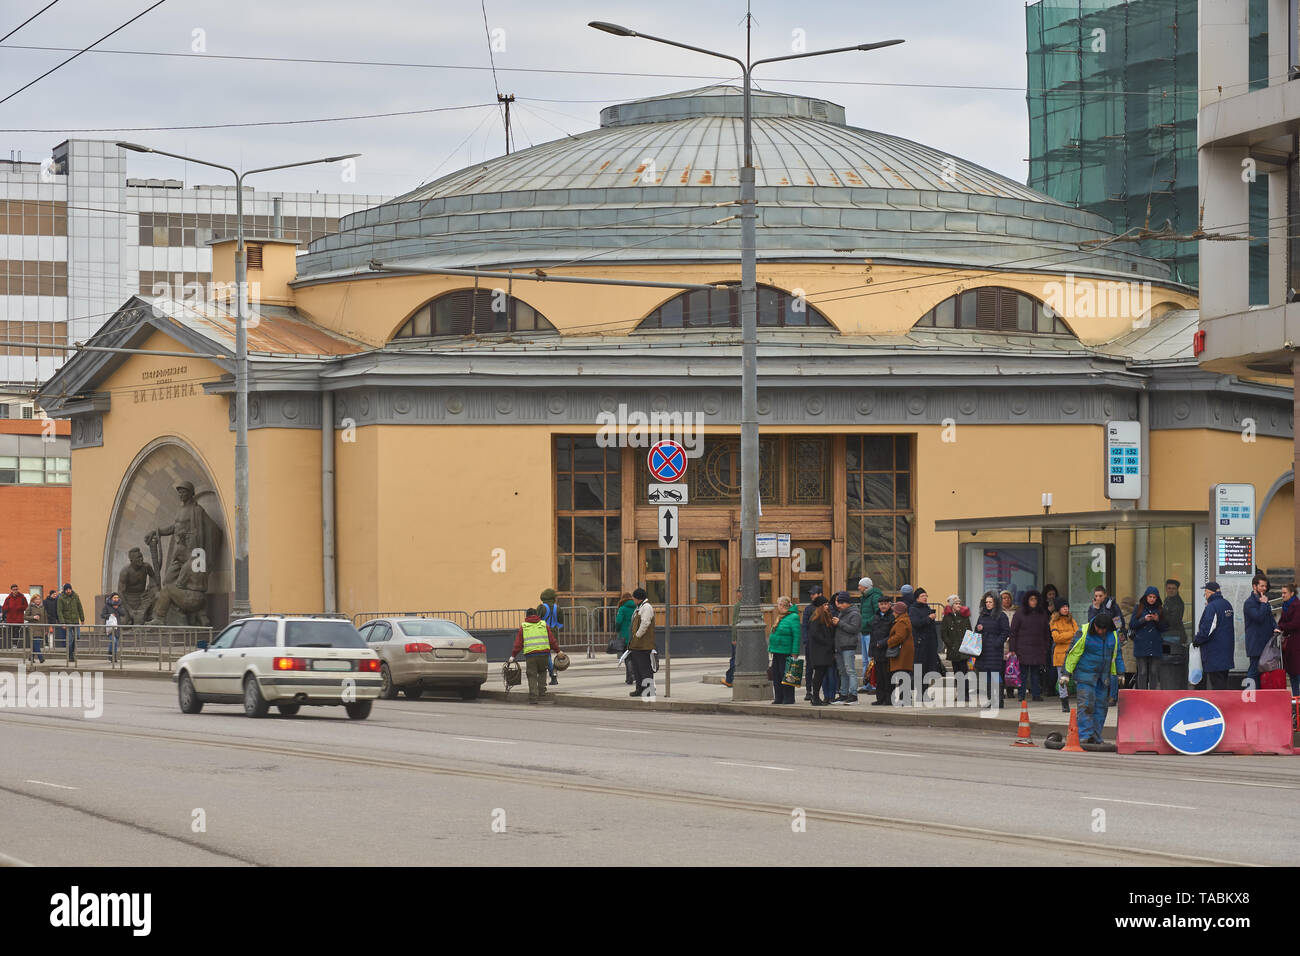 Moscow, Russia - March 23, 2019: Subway station lobby Elektrozavodskaya. Majority of people wait for the public transport. There are information signs Stock Photo